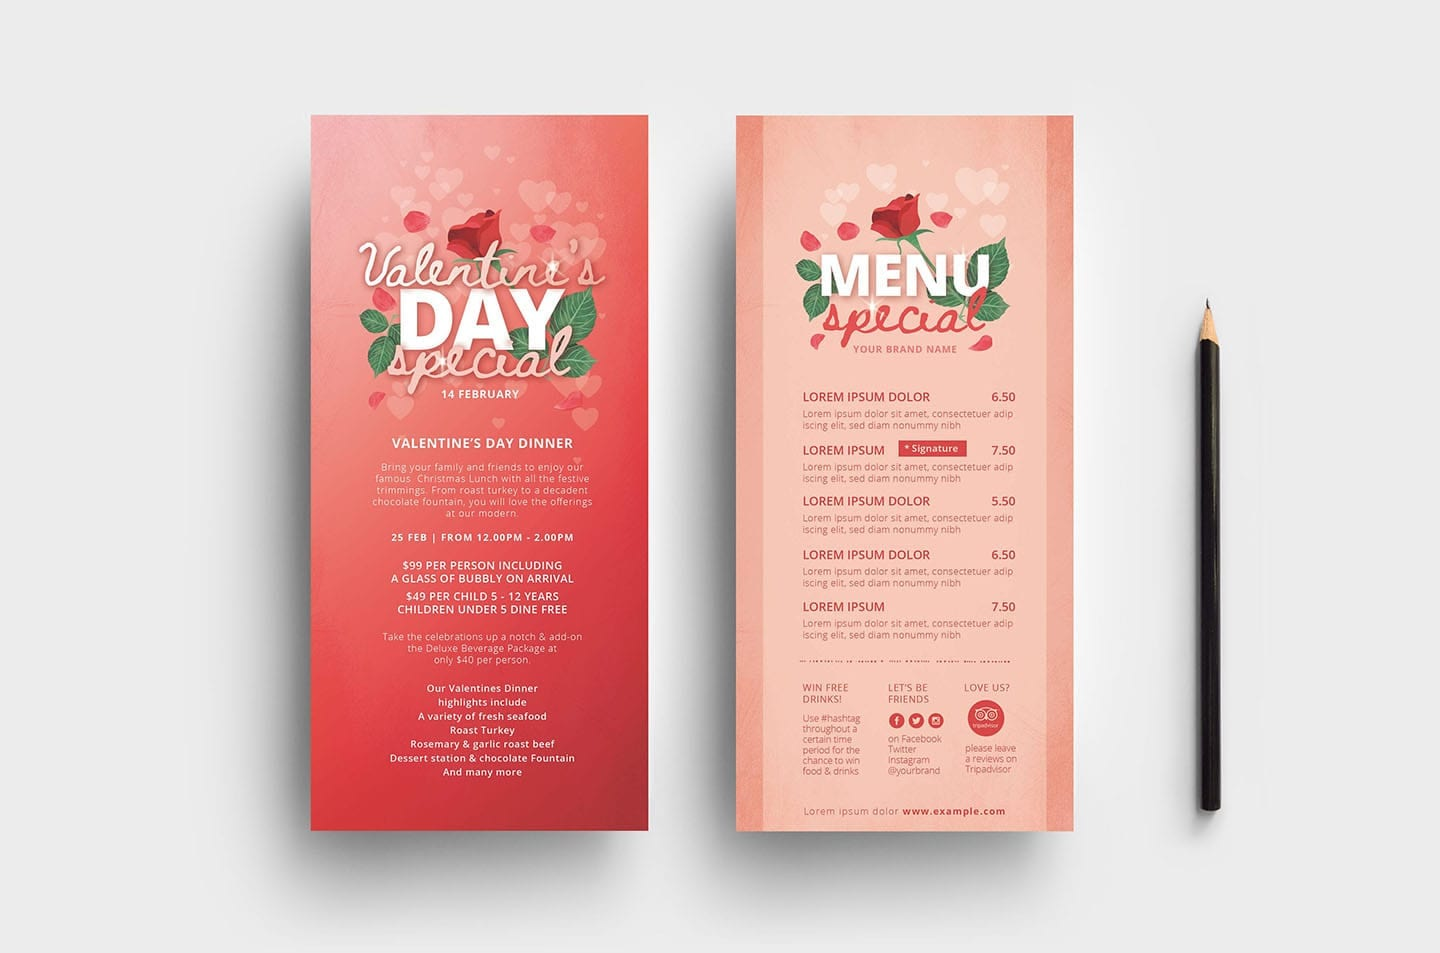 Red Valentine's Day DL Card Template